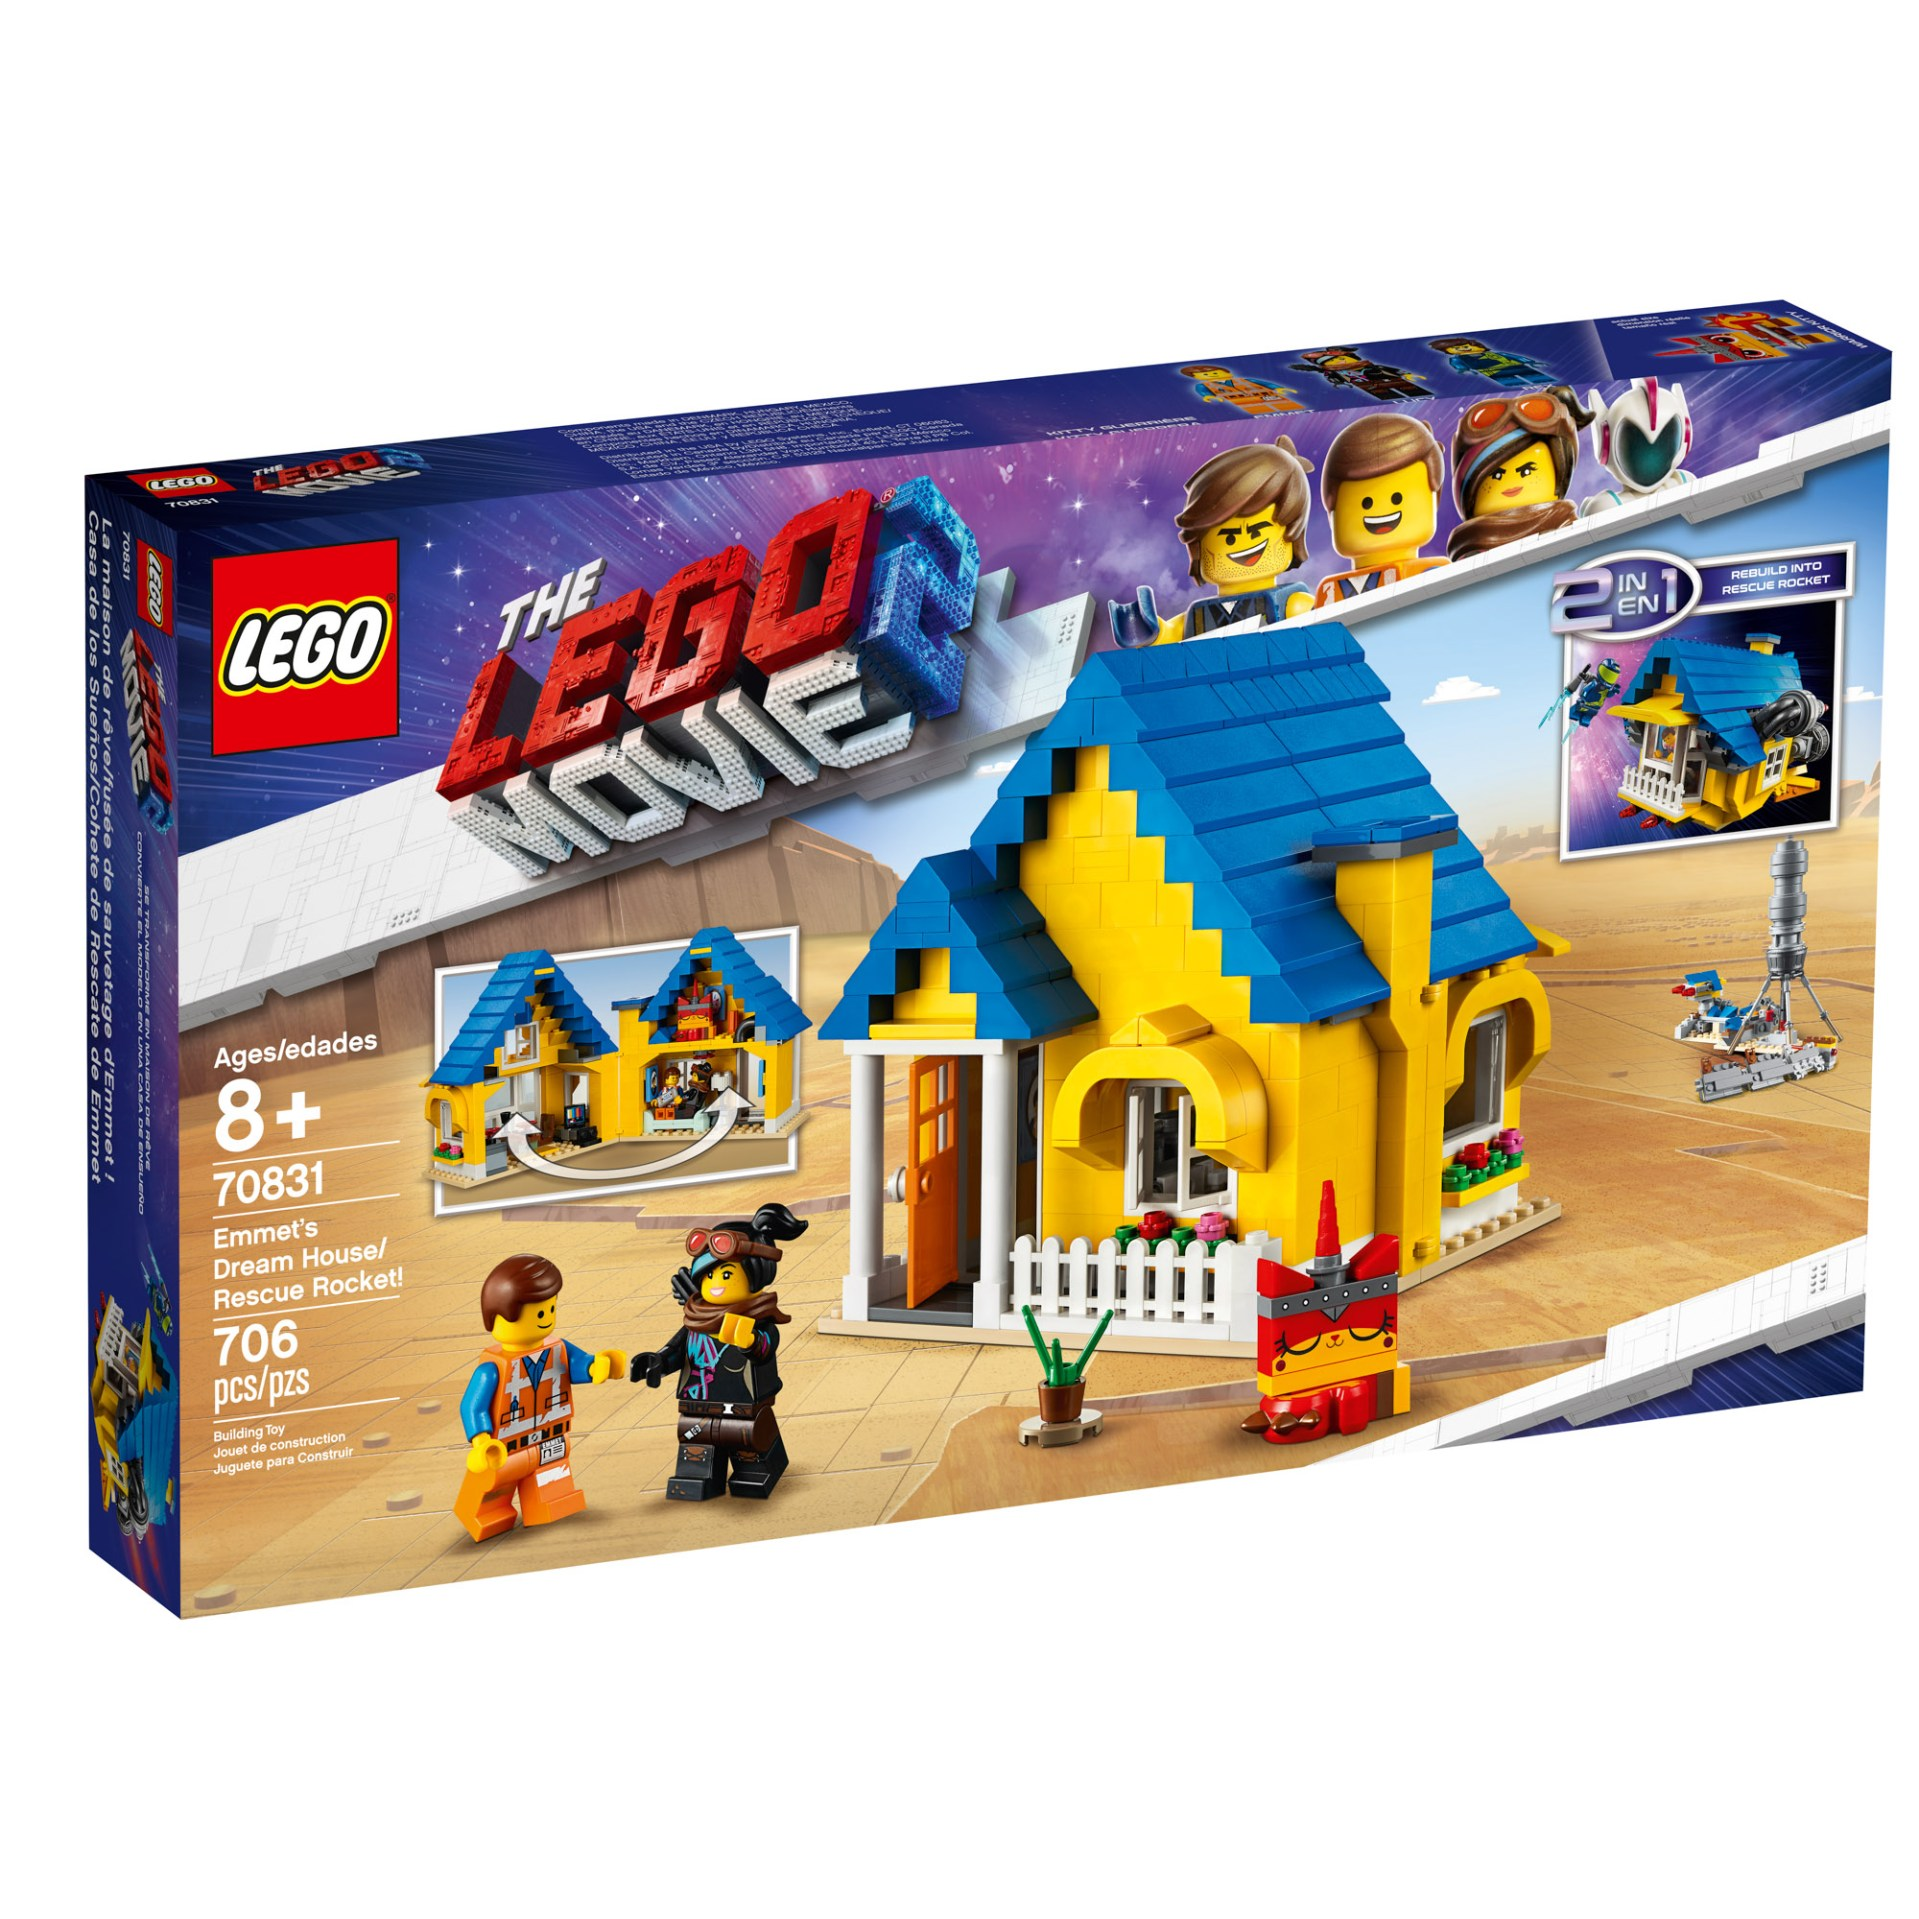 70831 — Emmet's Dream House/Rescue Rocket